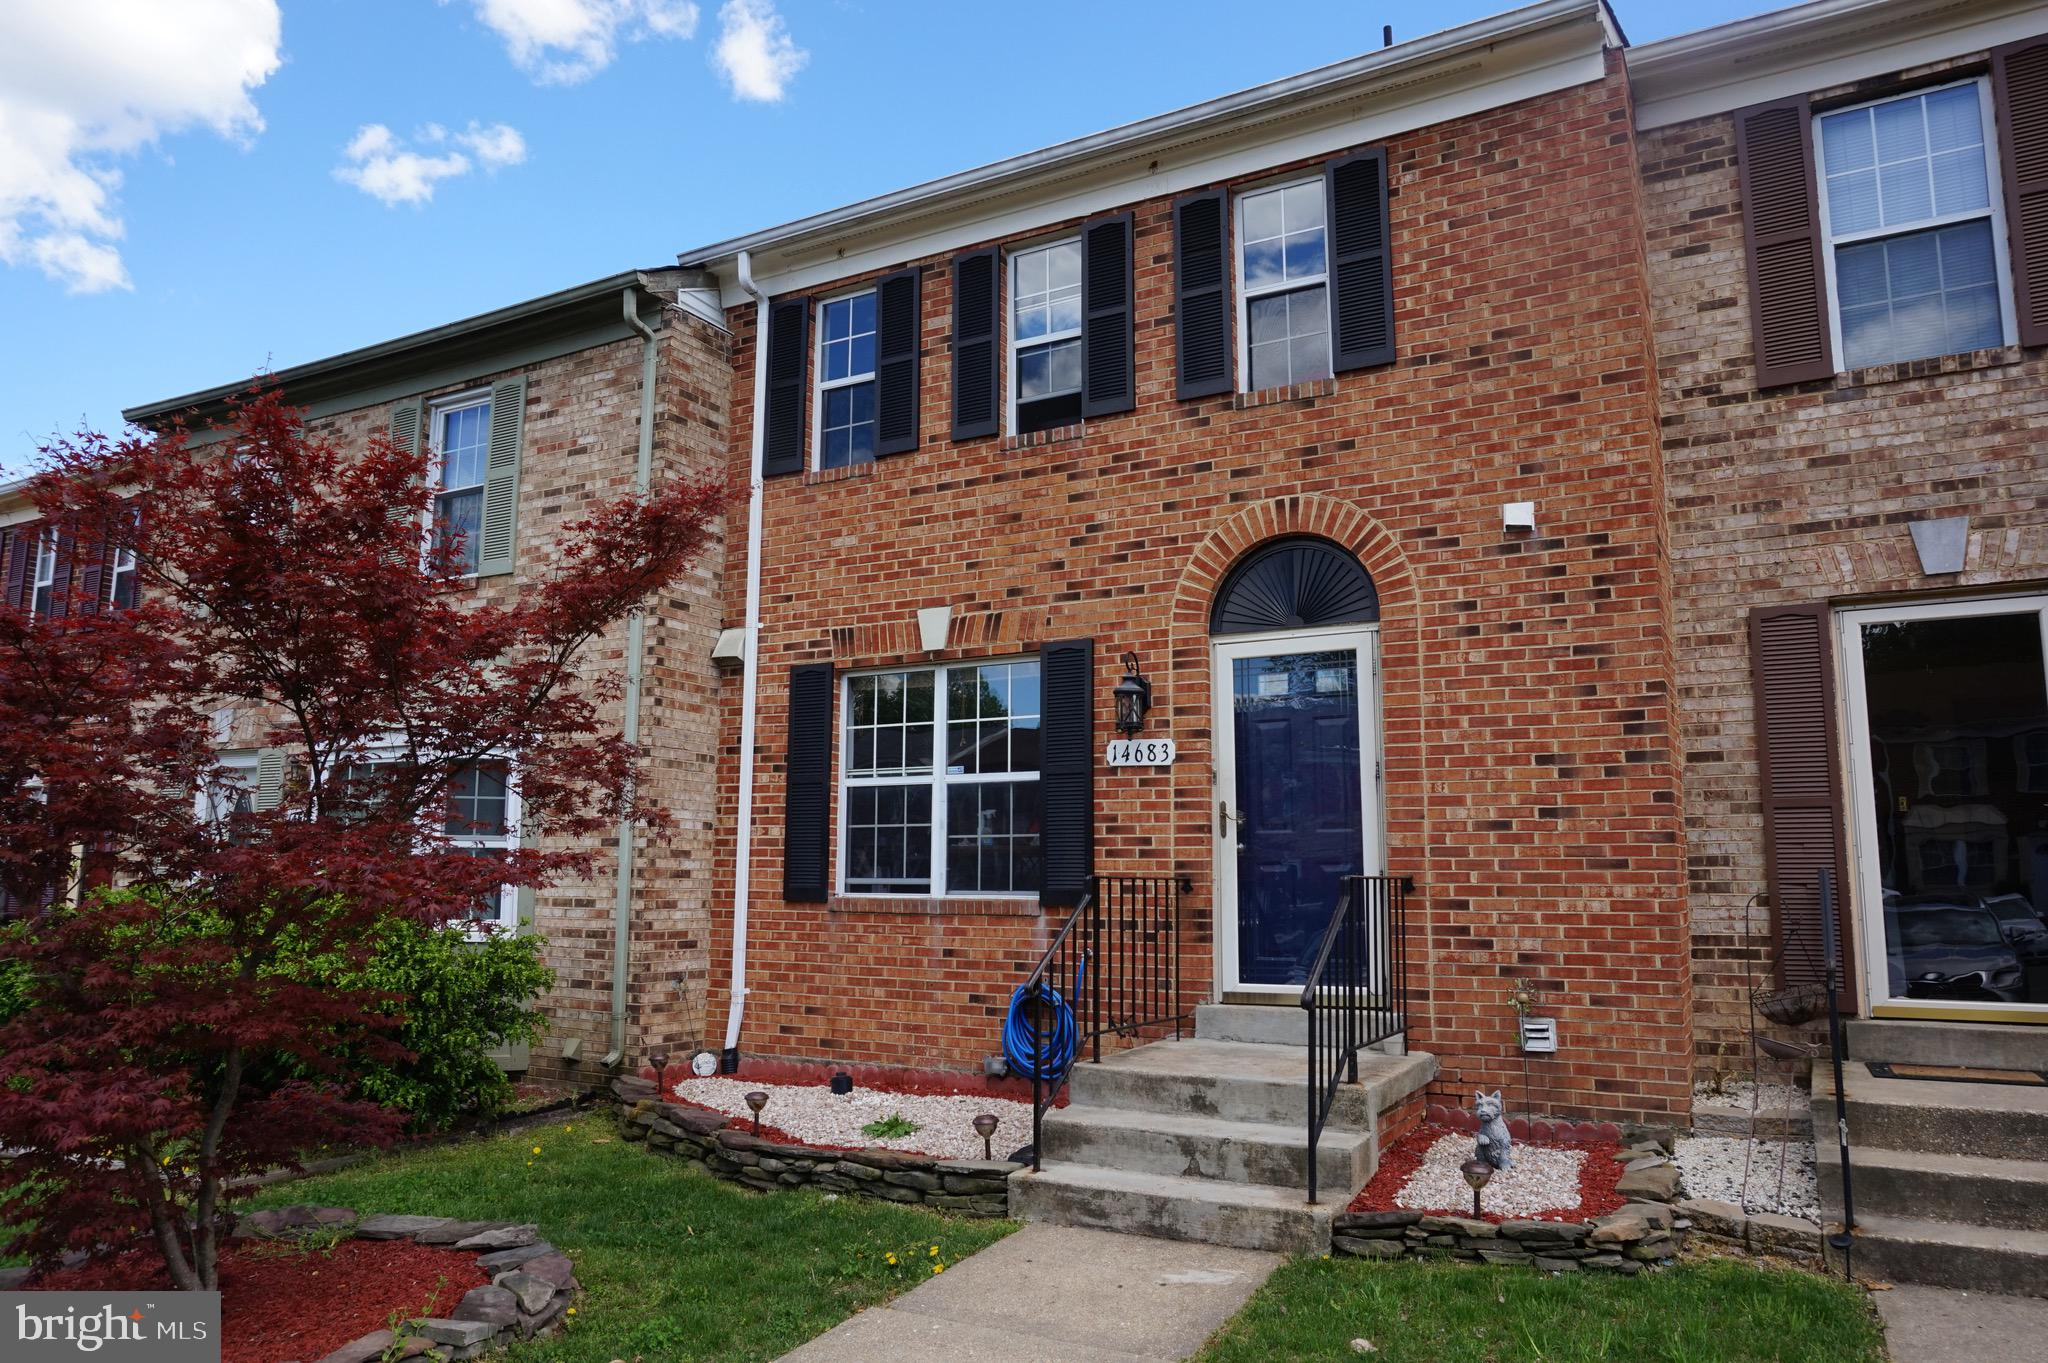 3 Level Town house. Beautiful remodeled kitchen with recently updated SS appliances, Den in basementcould be use as a 4th bedroom, new carpet in rooms, fence installed last year, Great location minutes to I95.  Close to Potomac Mills Mall, Potomac Town Center, lots of restaurants, stores and more.